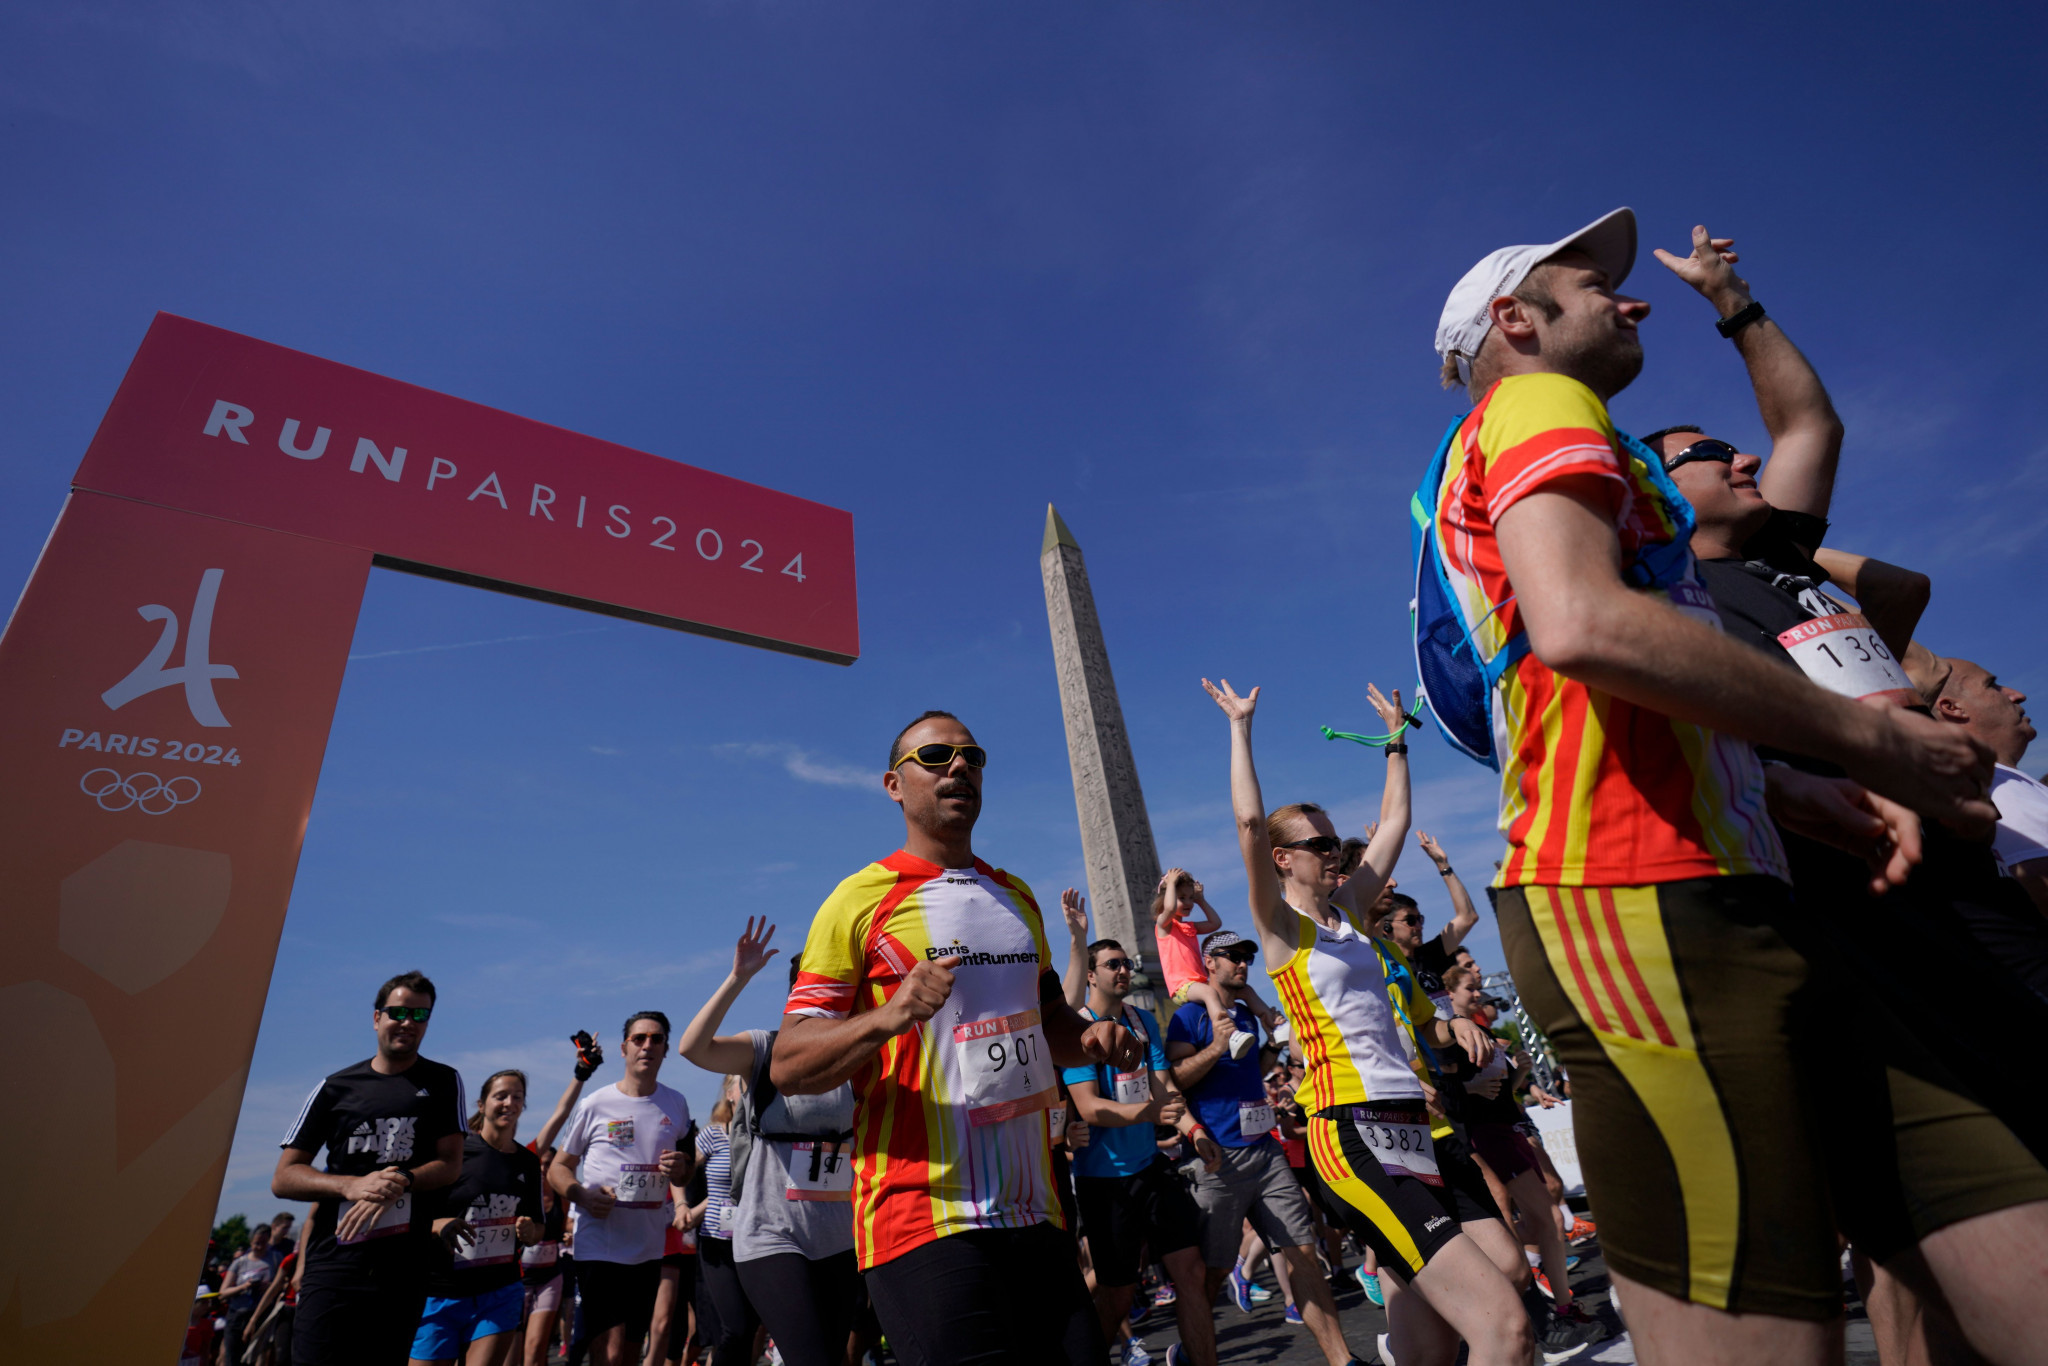 Place de la Concorde is set to host urban sports events at the Games ©Getty Images